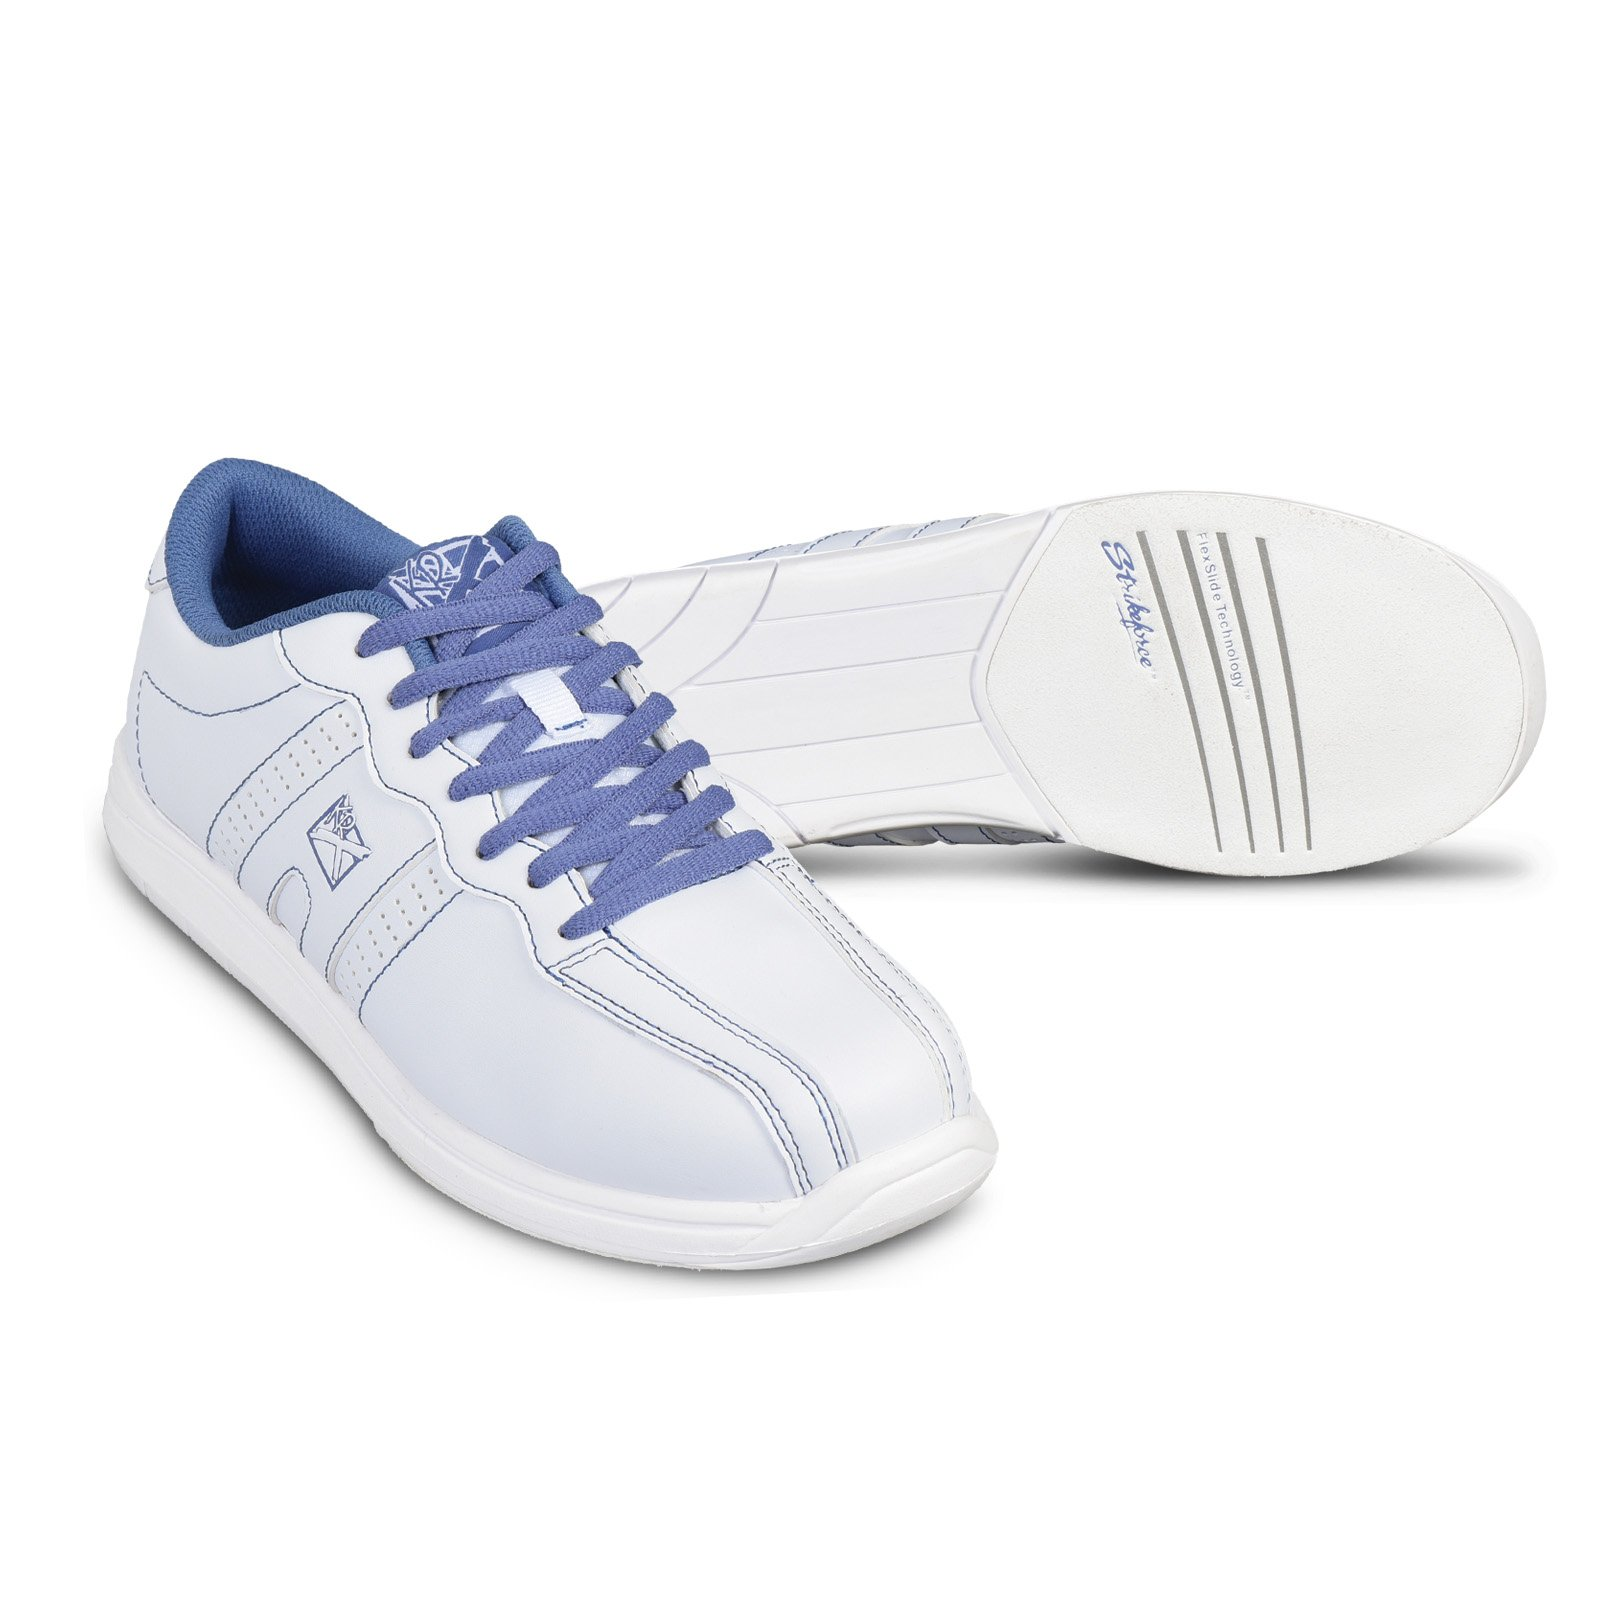 KR Strikeforce Women's O.P.P Bowling Shoes, White/Periwinkle, Size 10 by KR Strikeforce